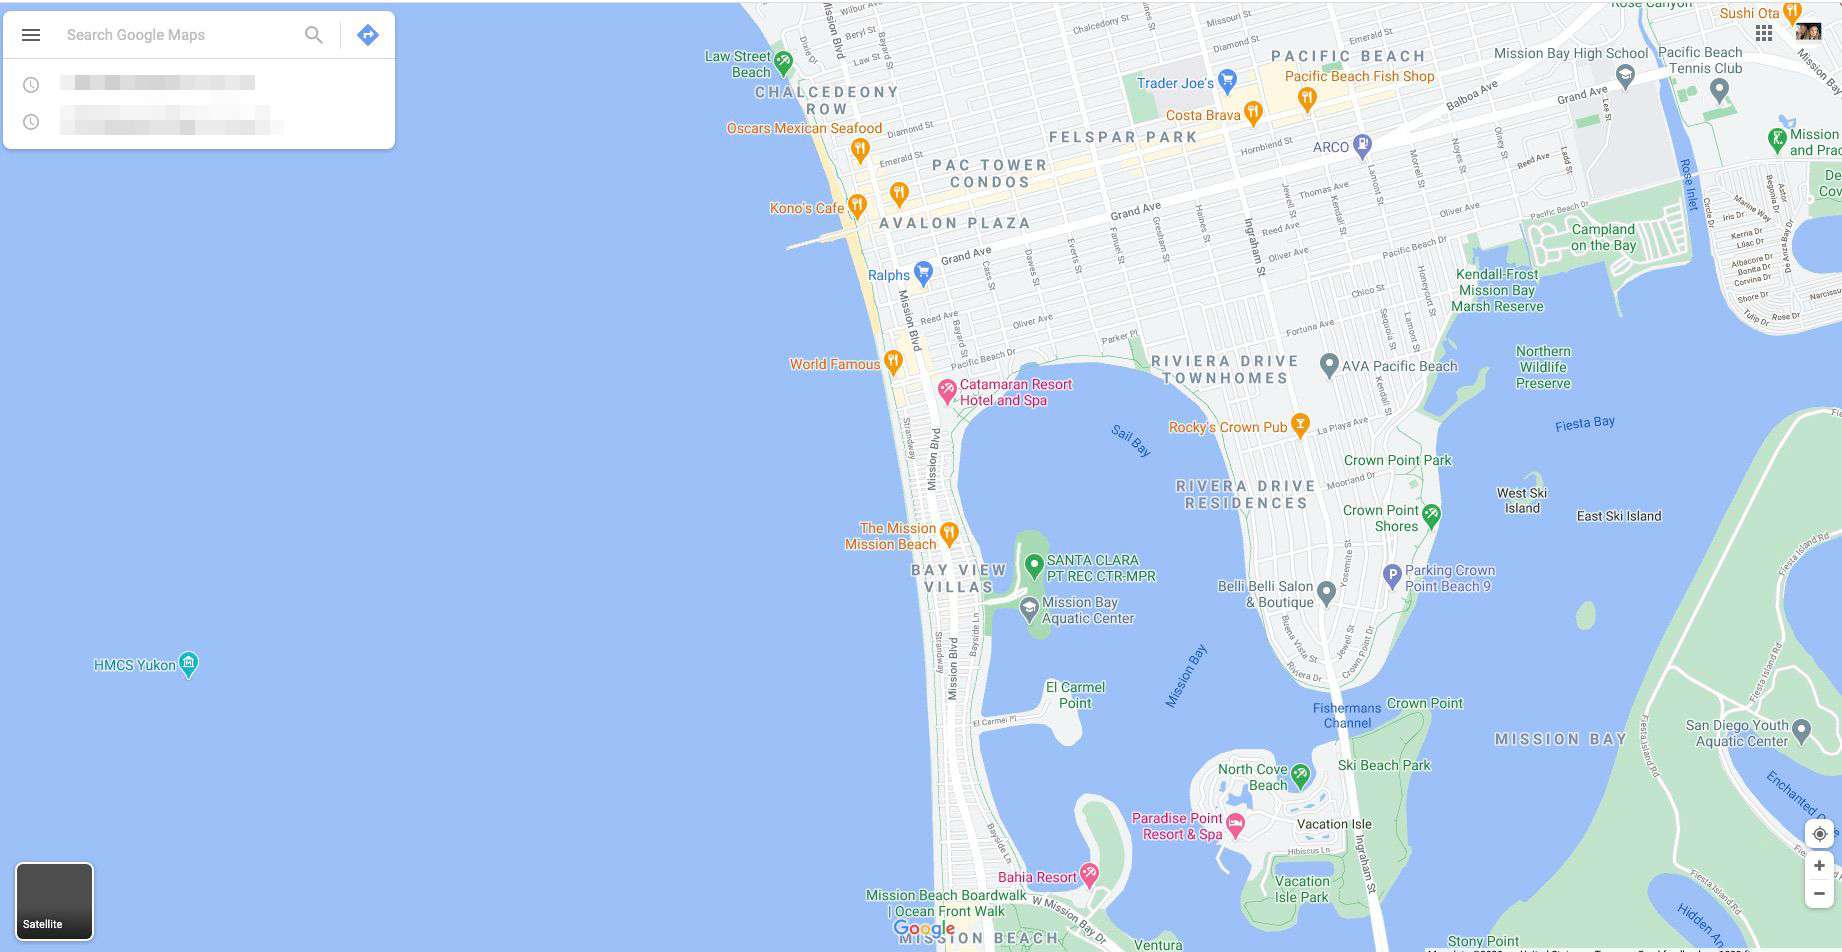 Navigate to Google Maps in your web browser.